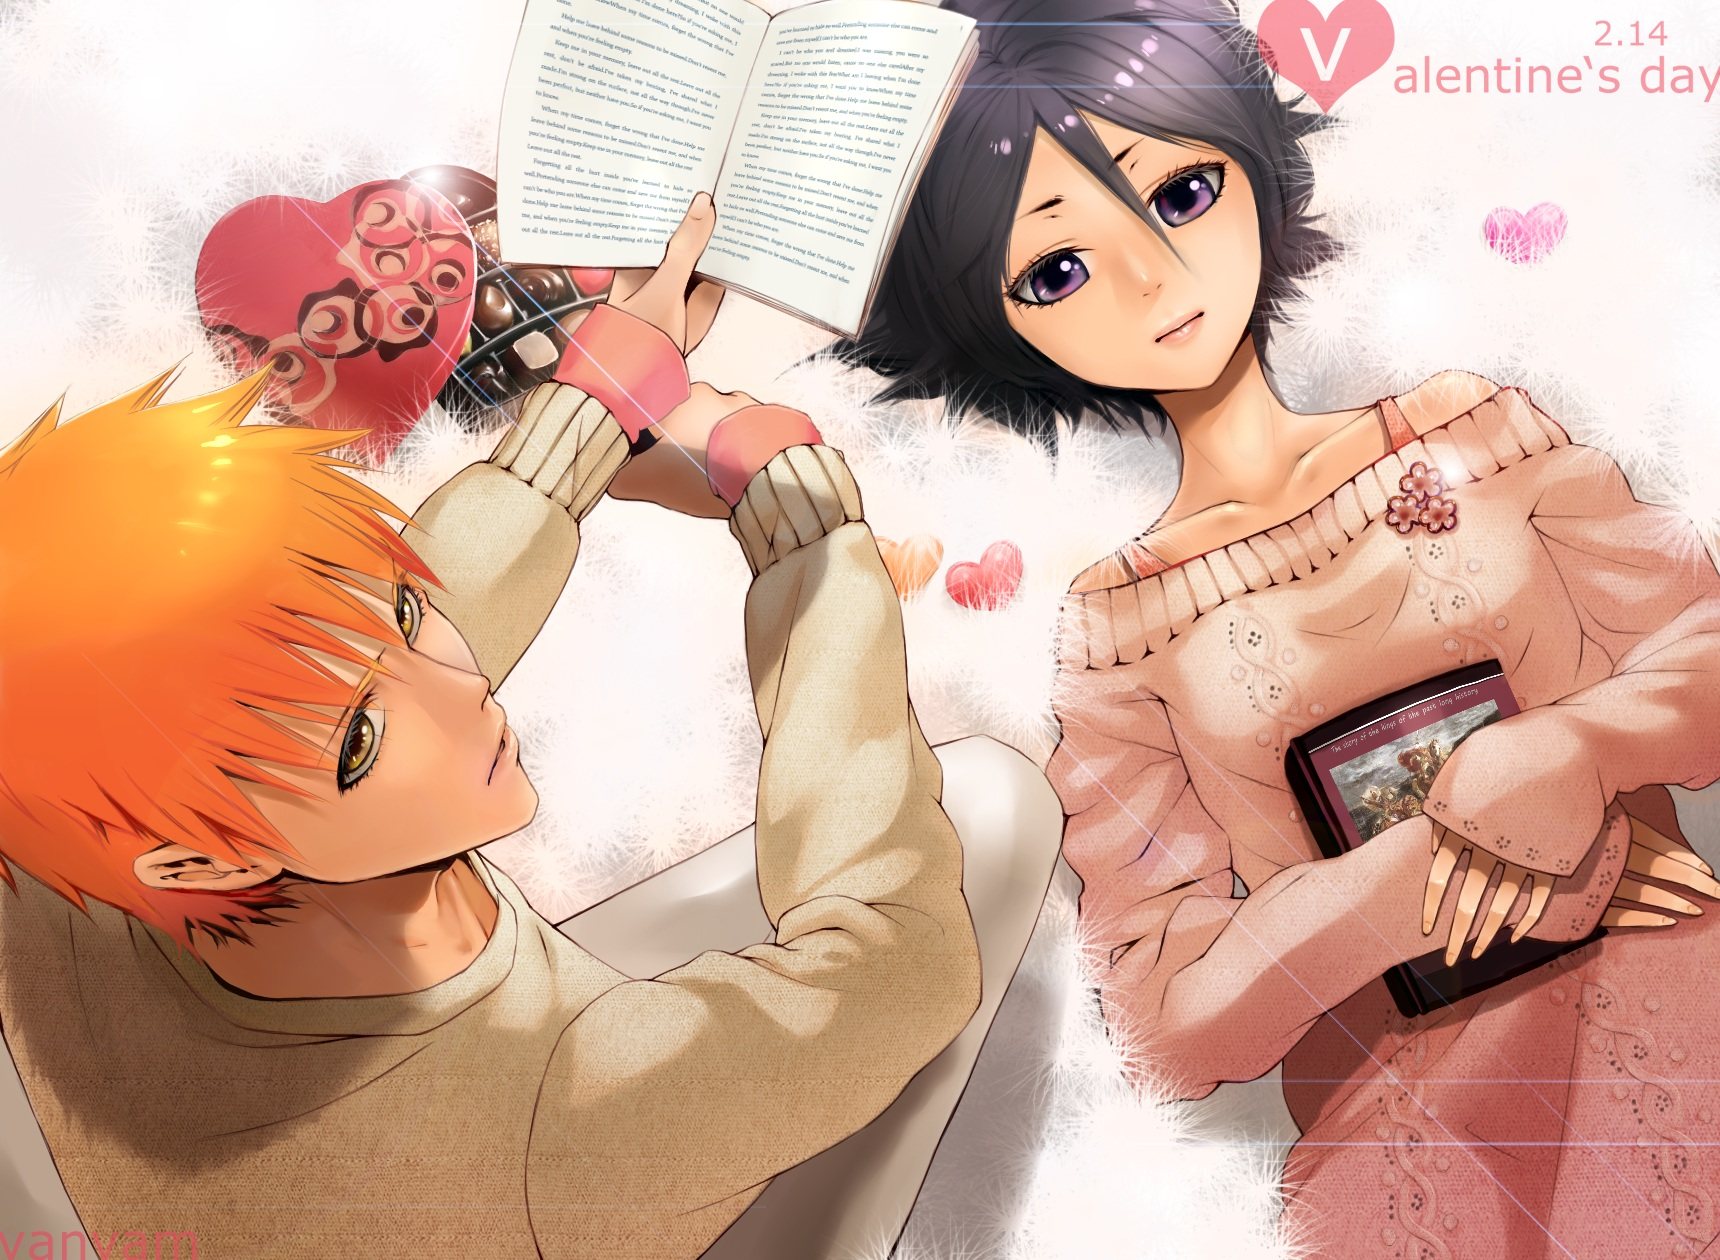 Top 5 guys we would date happy valentine s day uper - Happy valentines day anime ...